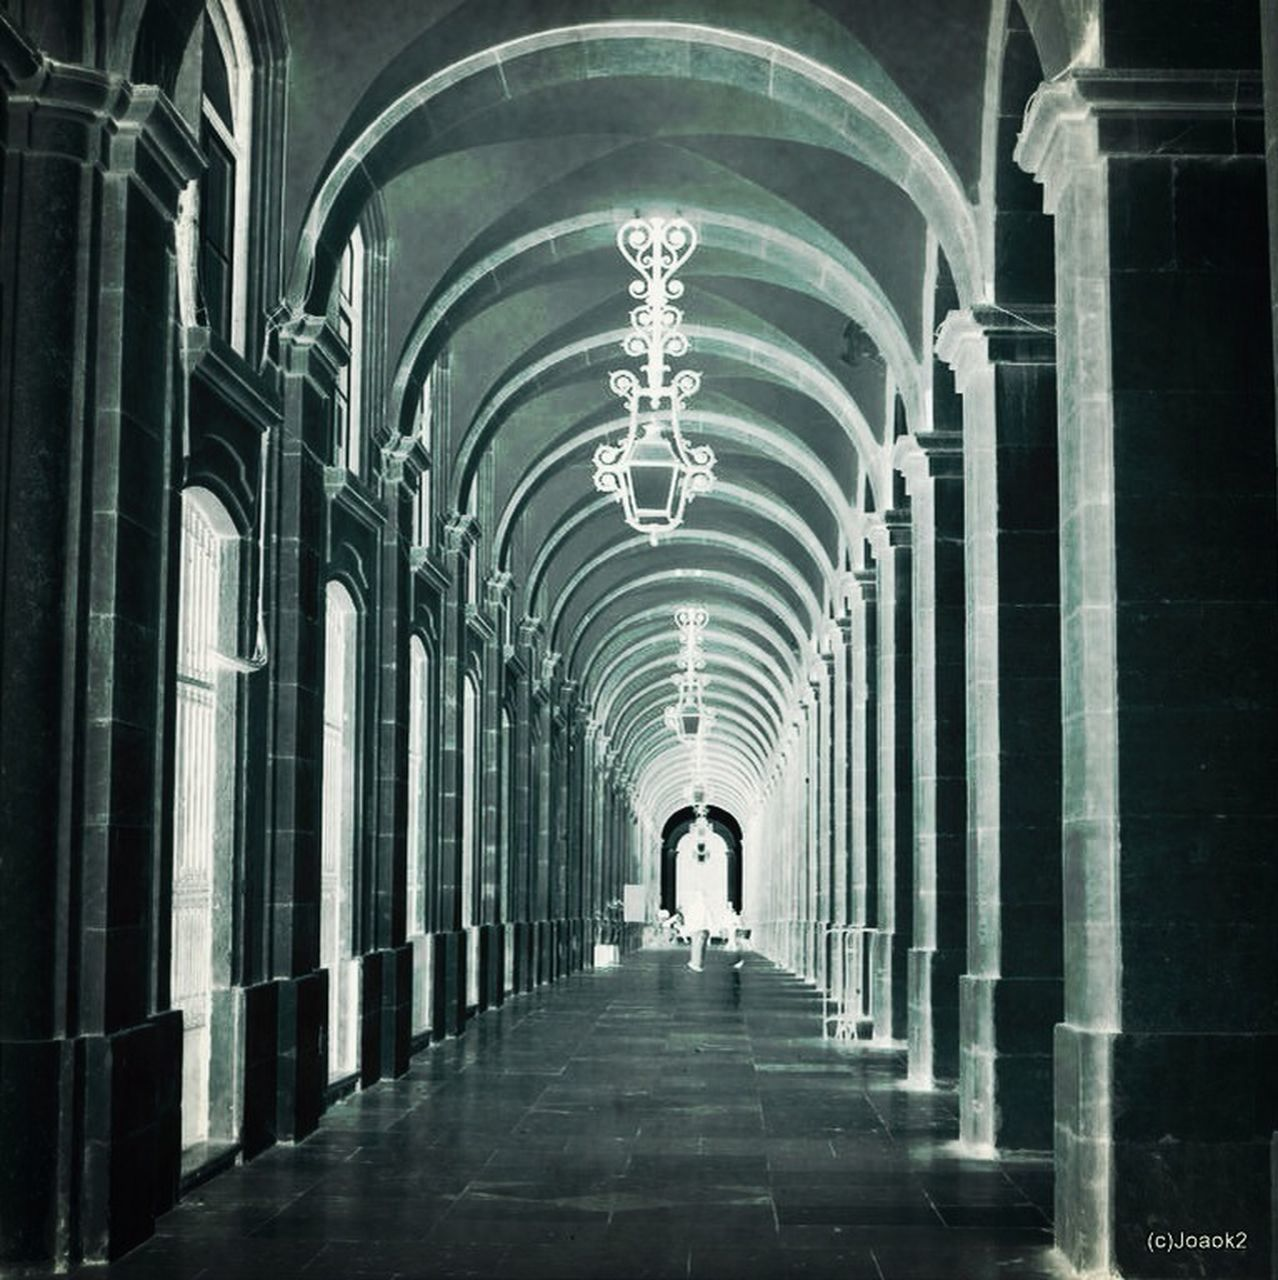 arch, architecture, the way forward, indoors, built structure, corridor, in a row, diminishing perspective, architectural column, history, full length, day, one person, people